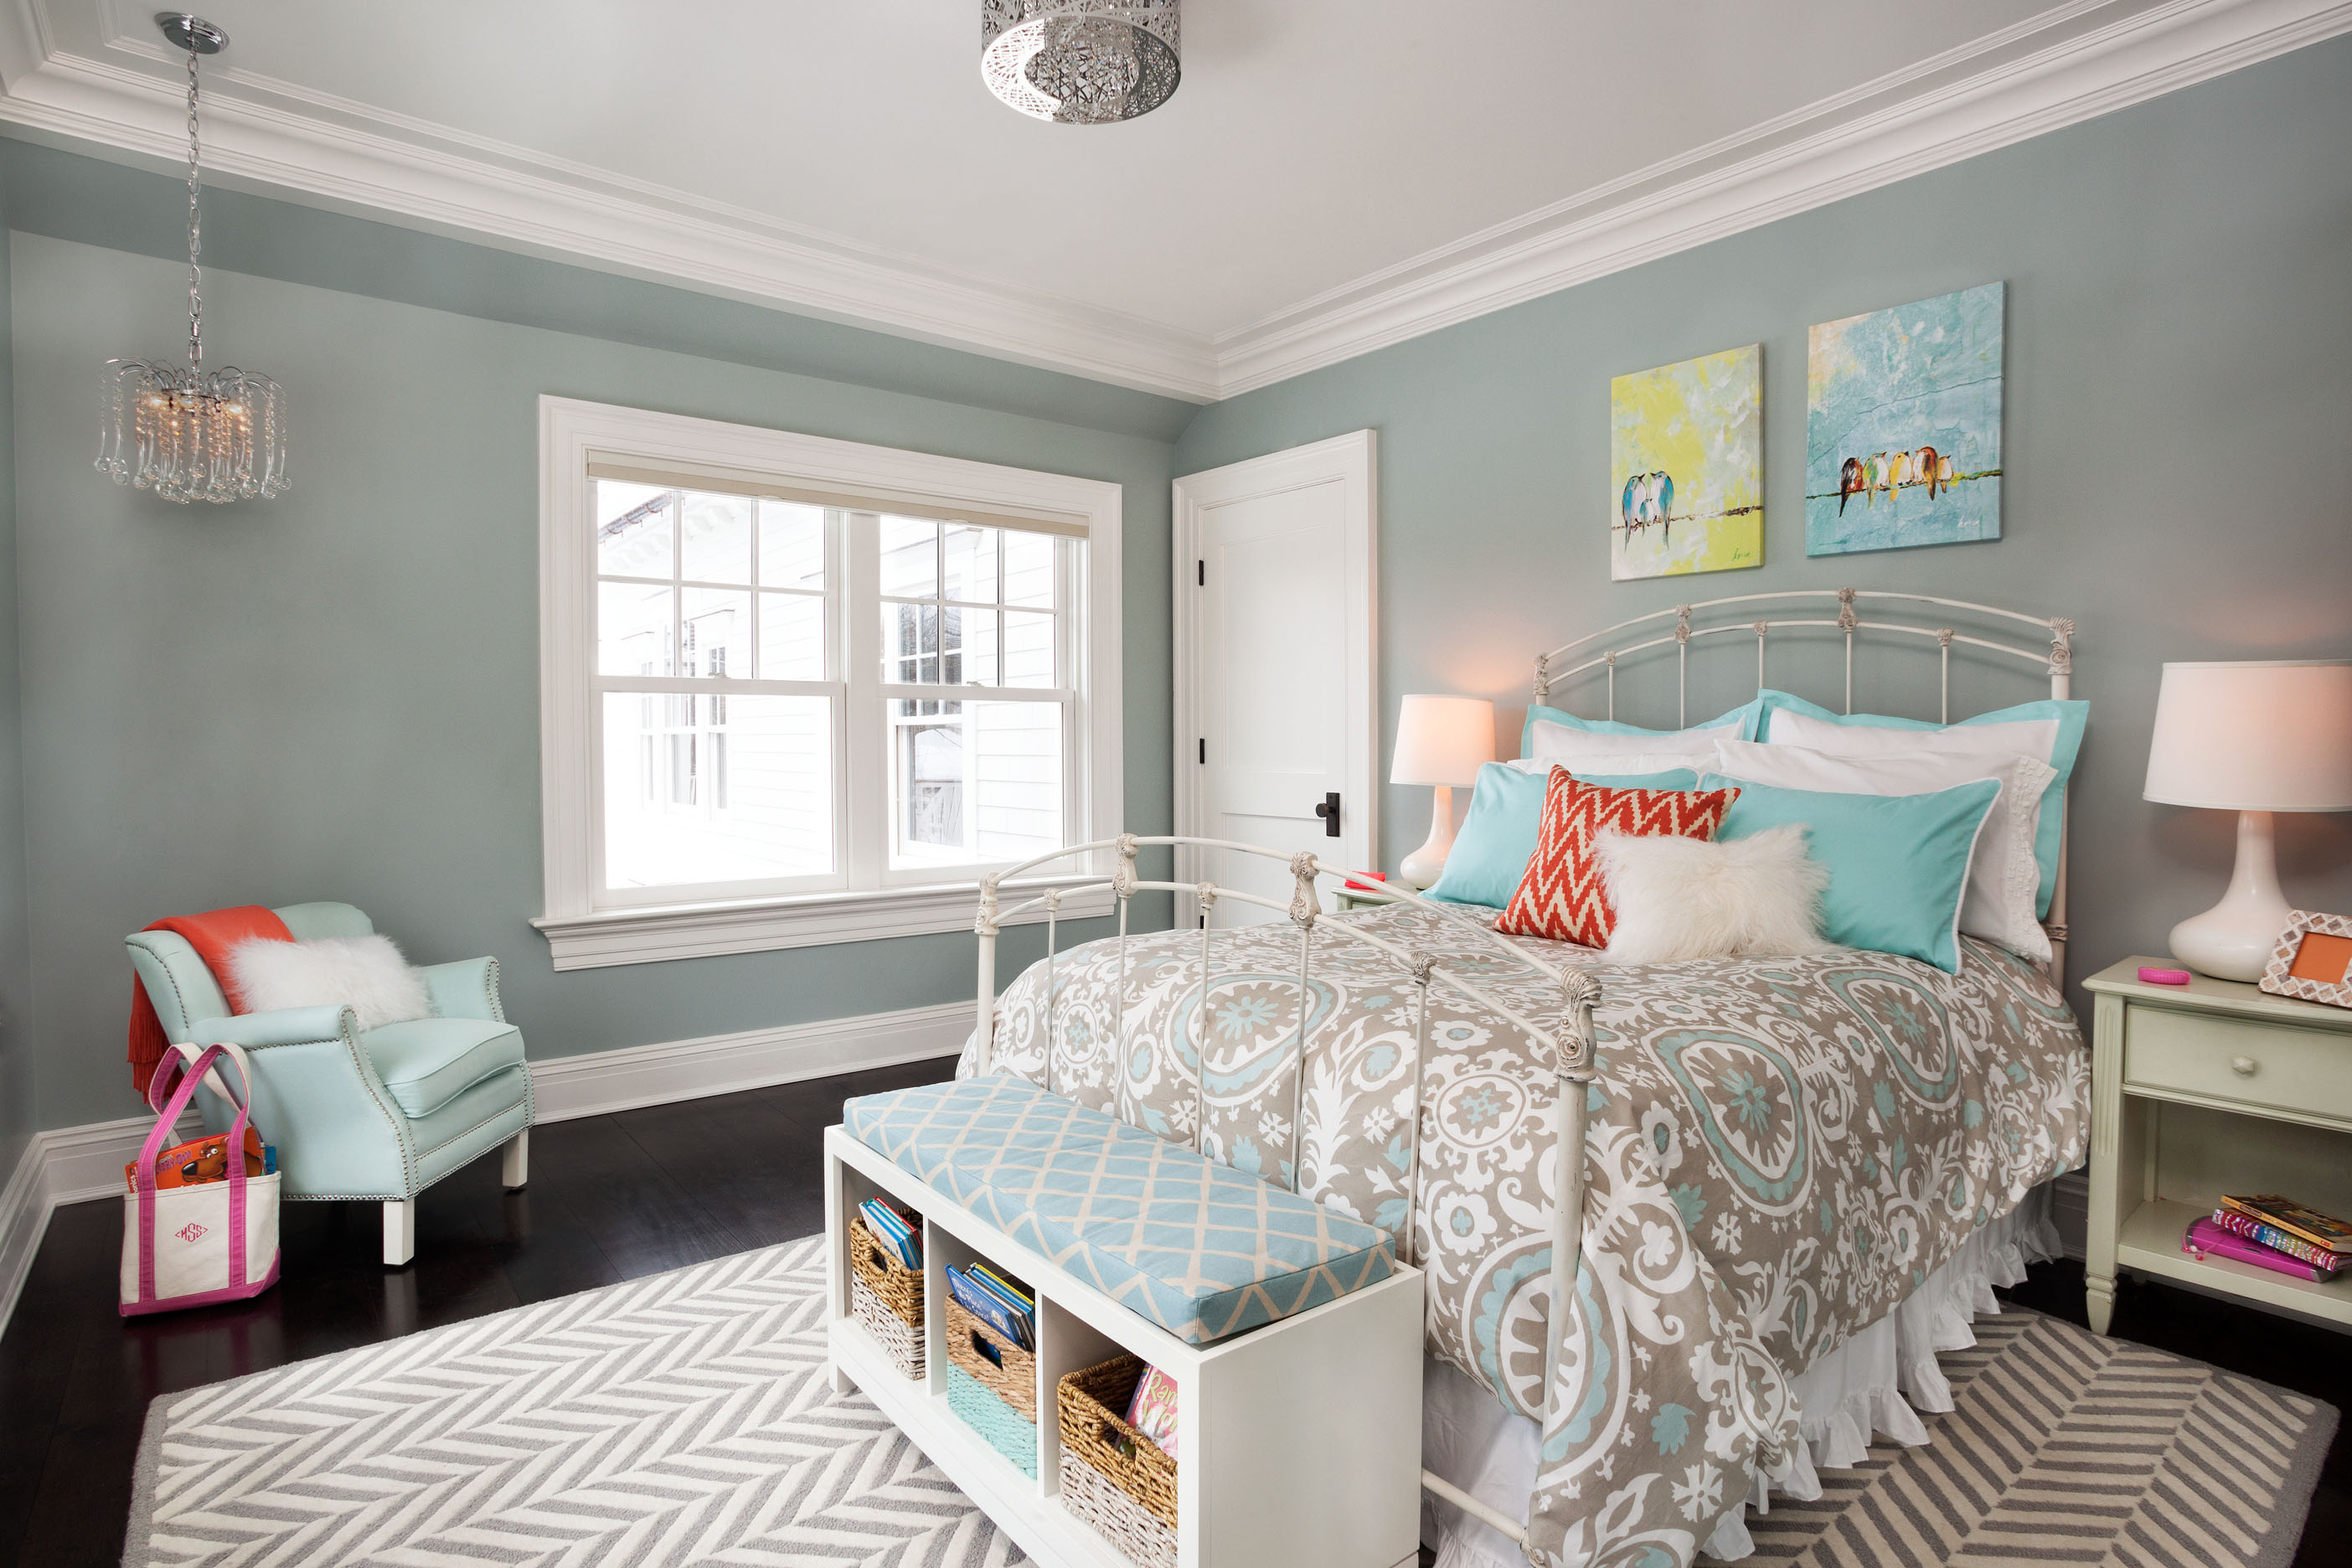 Beautifuly designed bedroom with blue patterns carpet windows